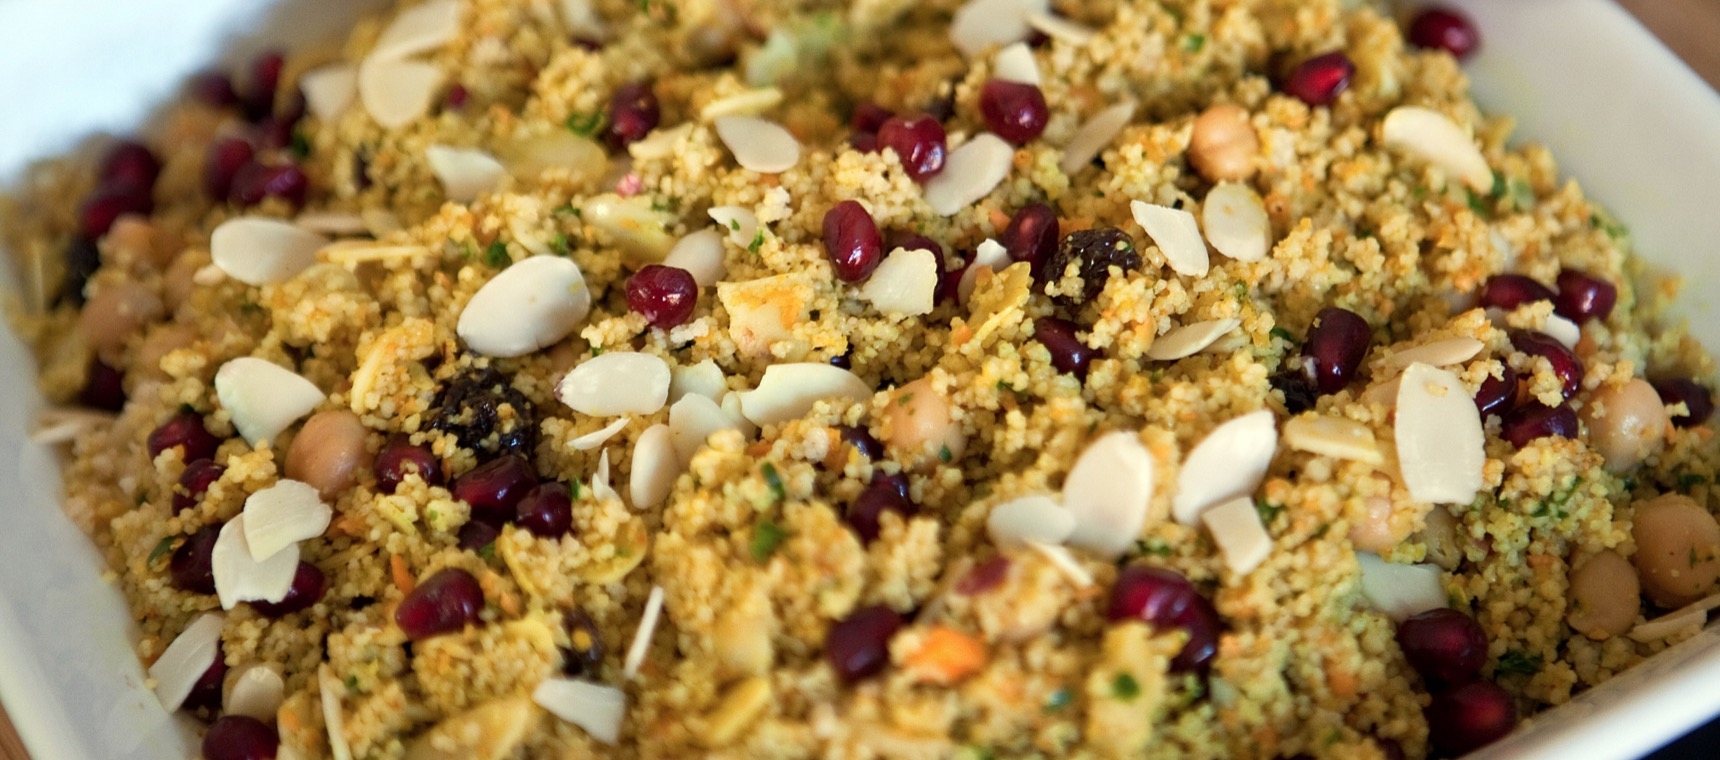 Warm Curried Couscous